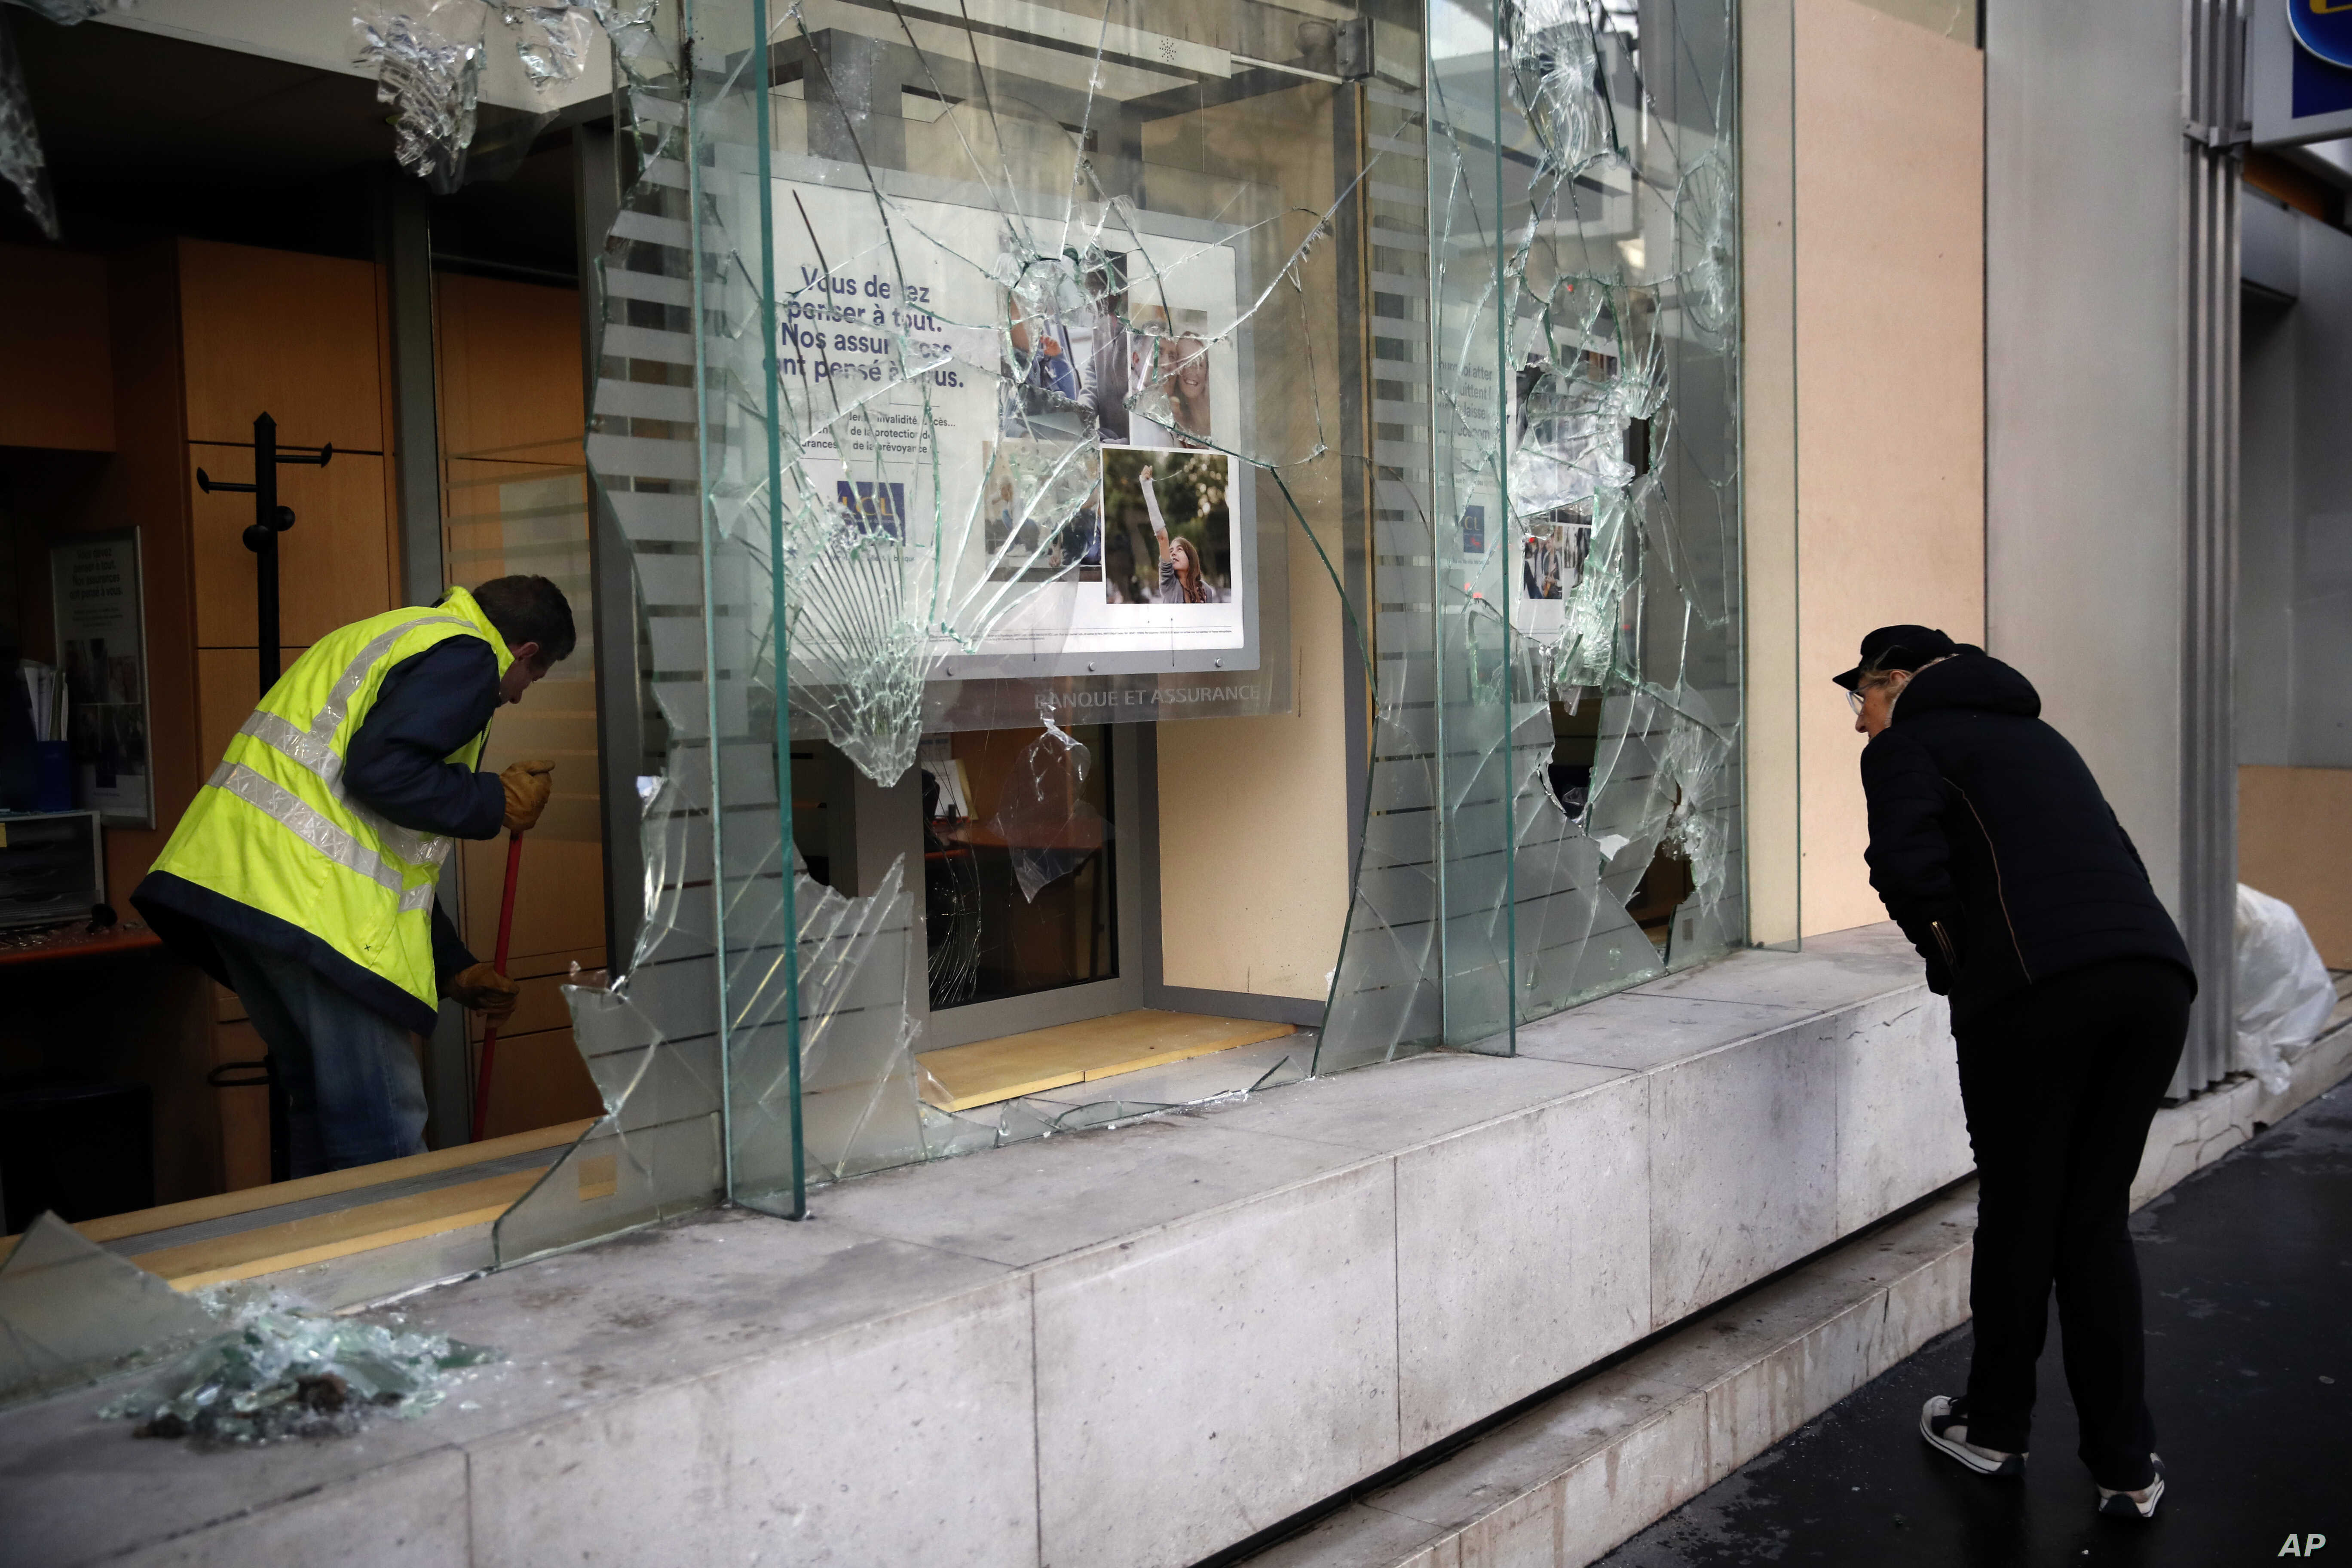 A worker clears debris in a bank as a man watches through smashed windows, in Paris, Sunday, Dec. 9, 2018.